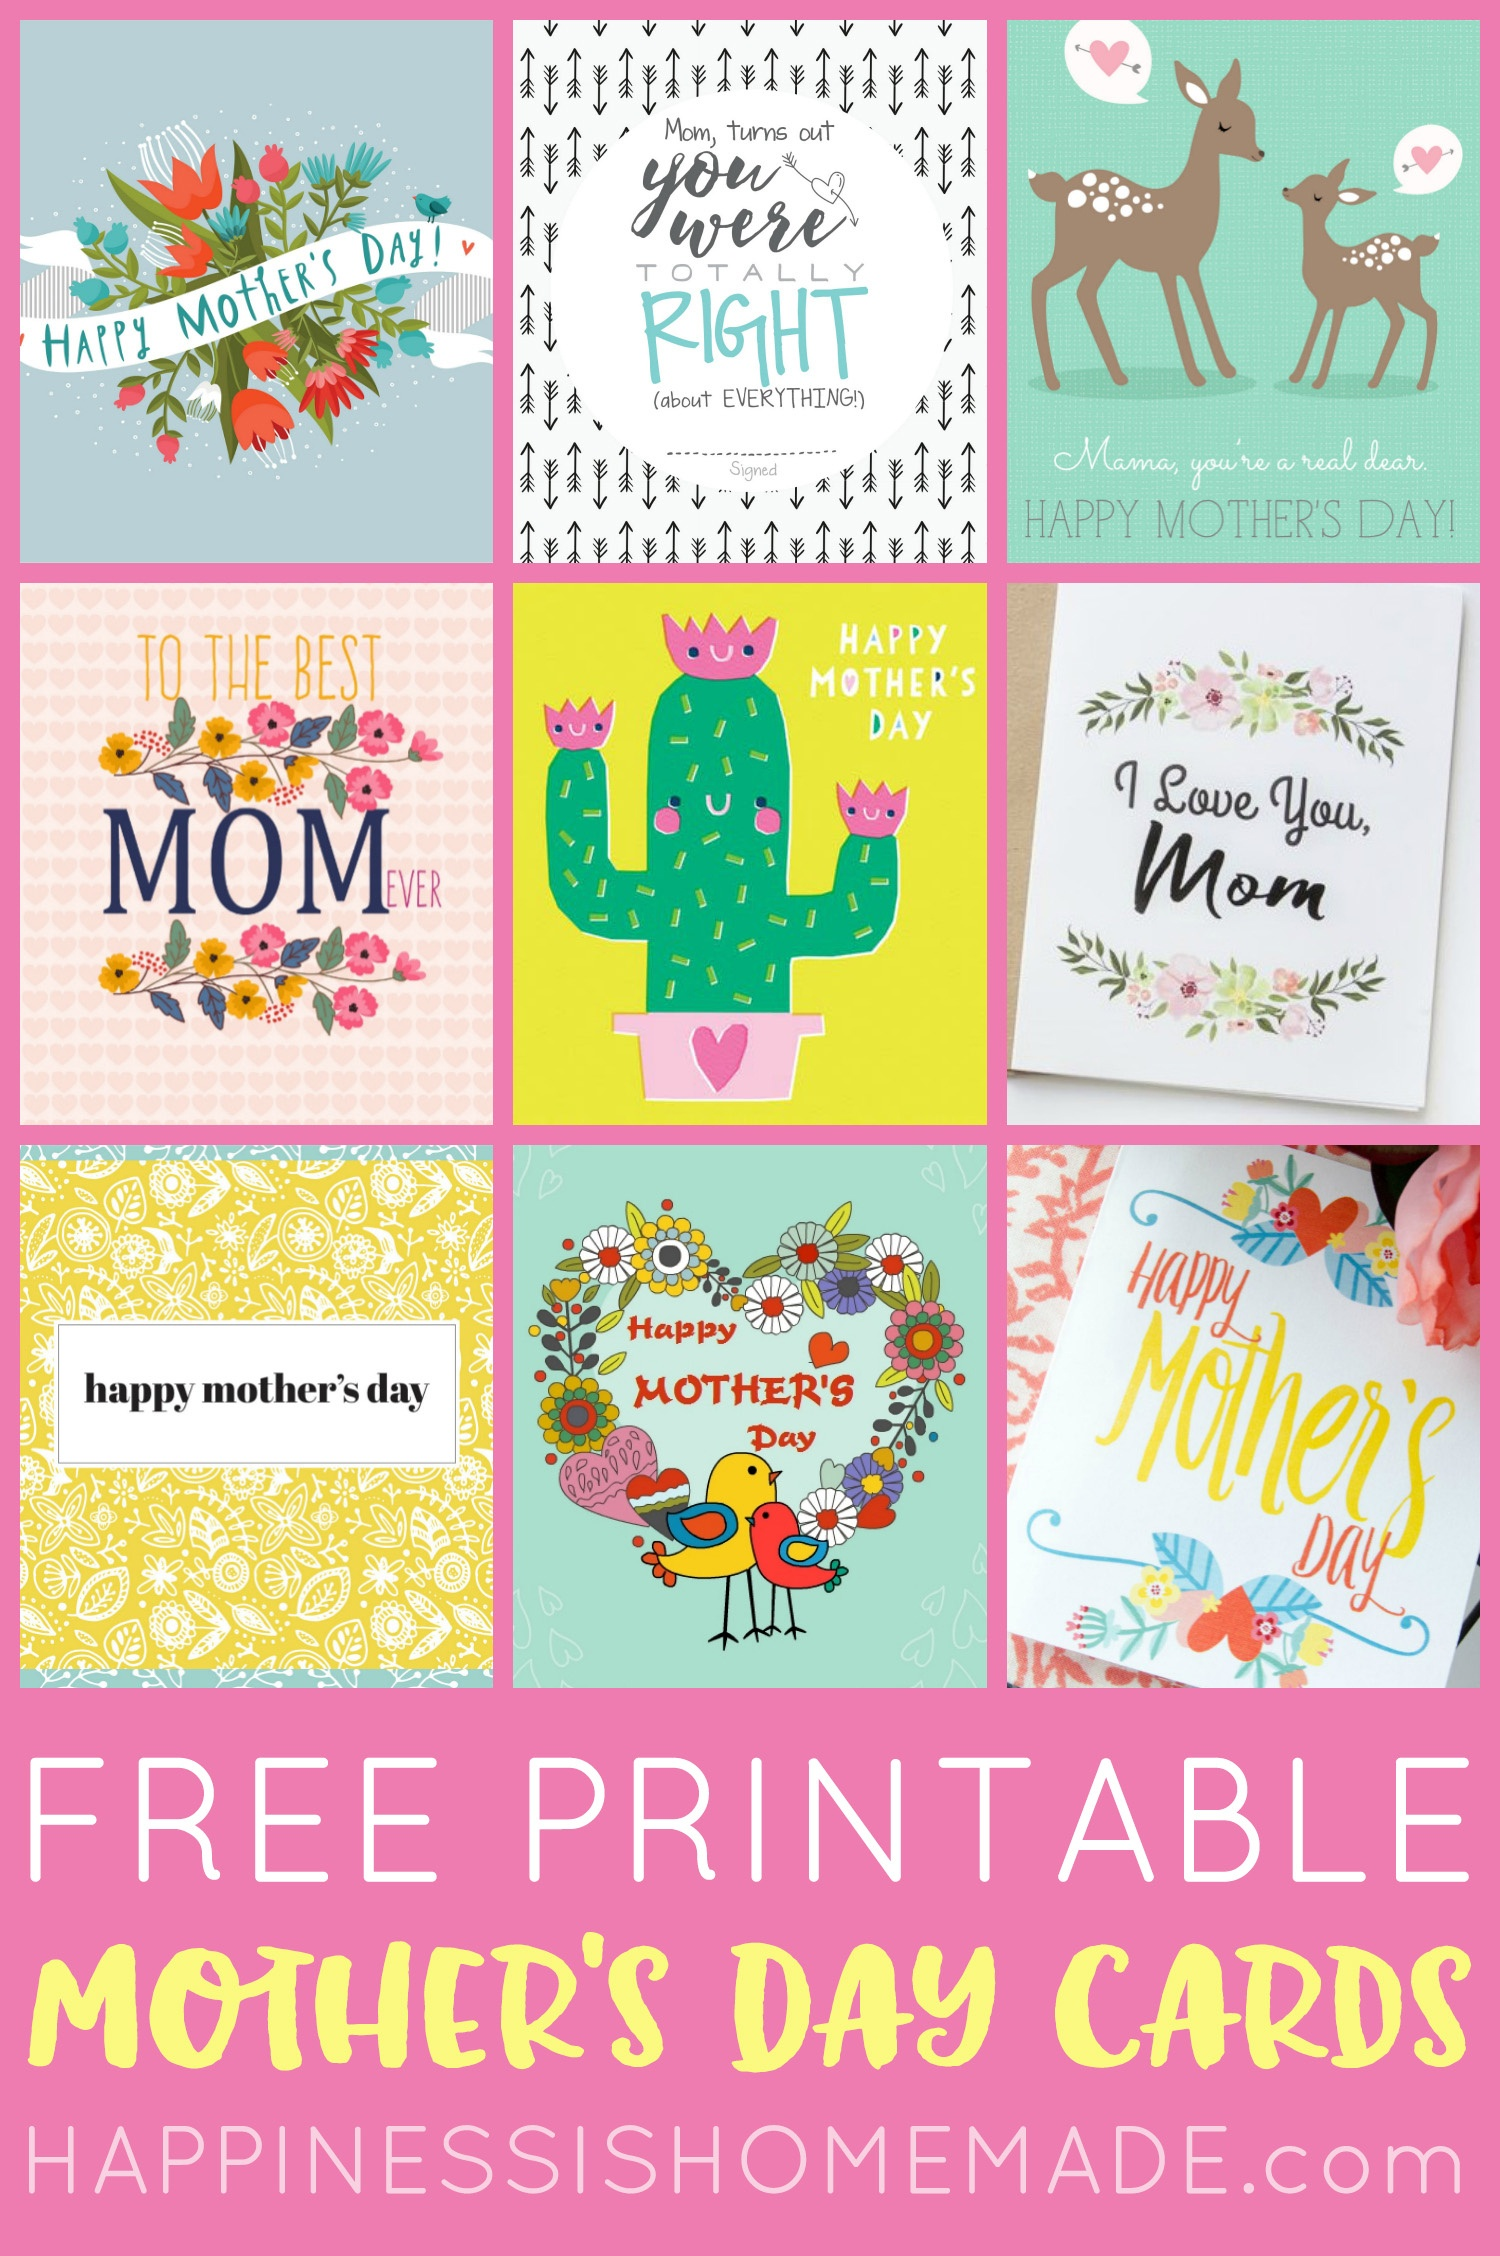 Free Printable Mother's Day Cards - Happiness Is Homemade - Free Printable Images